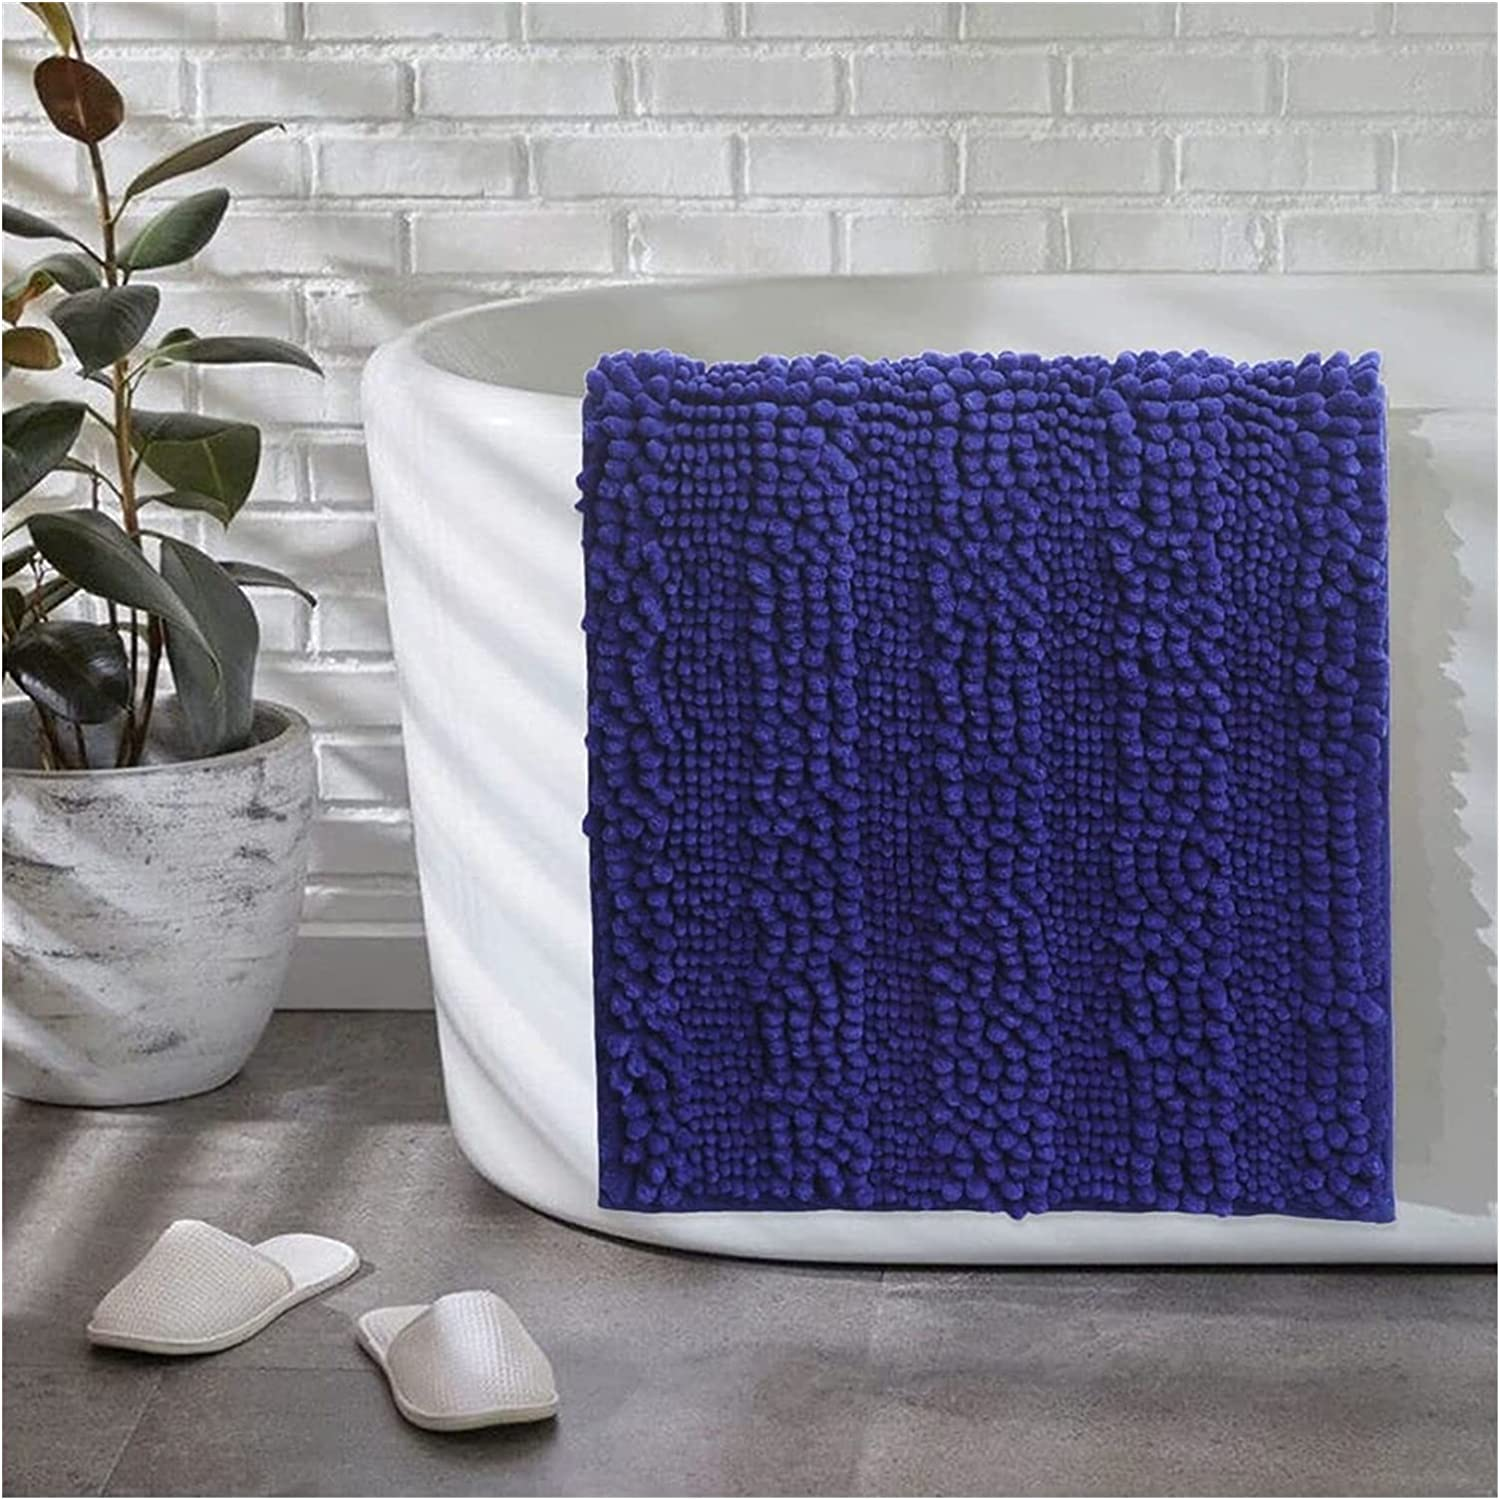 artizan Bathroom Non-Slip A surprise price is Superlatite realized Rug Thick Pad Foot Chenille Absorbent